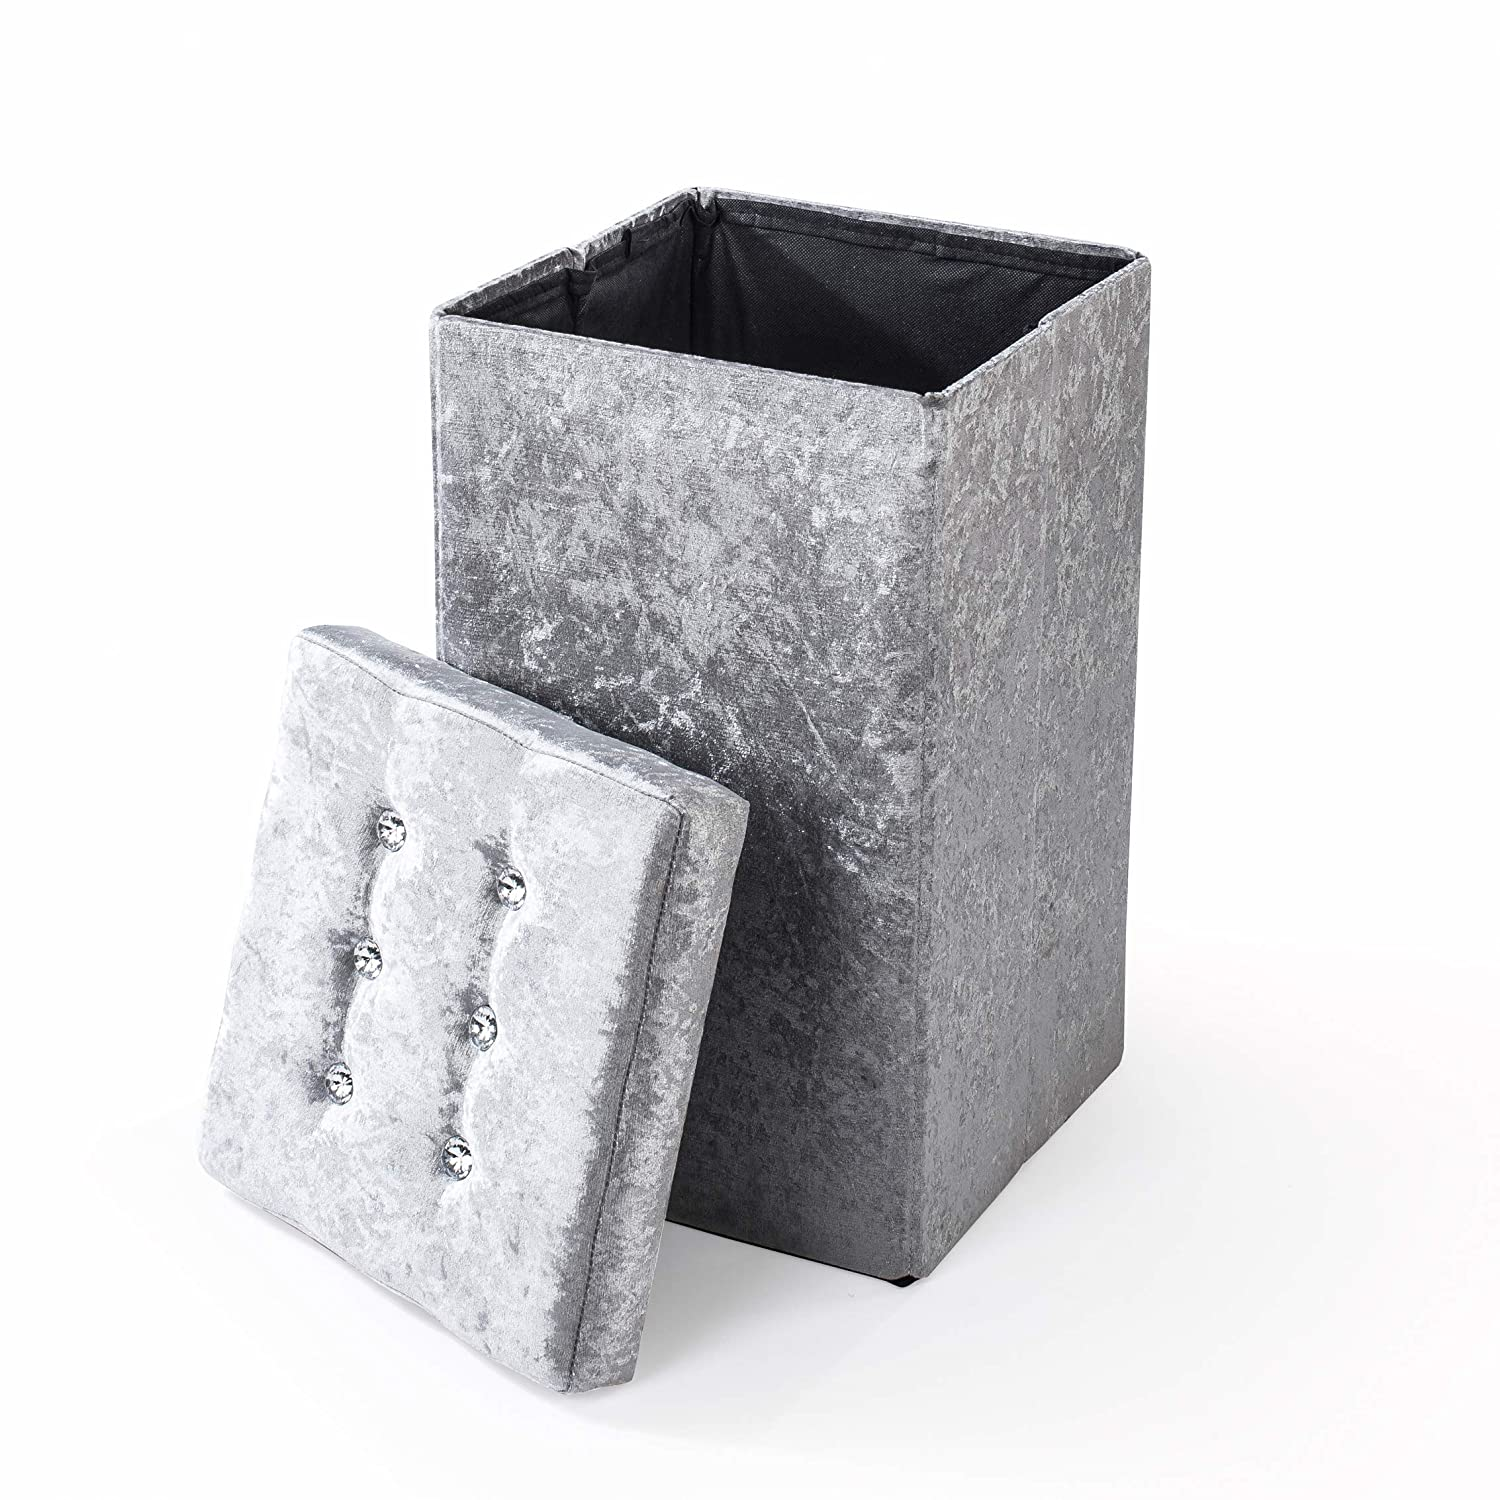 UK Home Accessories Large Laundry Bin//Collapsible Stool Hamper crushed velvet silver Washing Bin with Lid dressing table chair. Storage Box